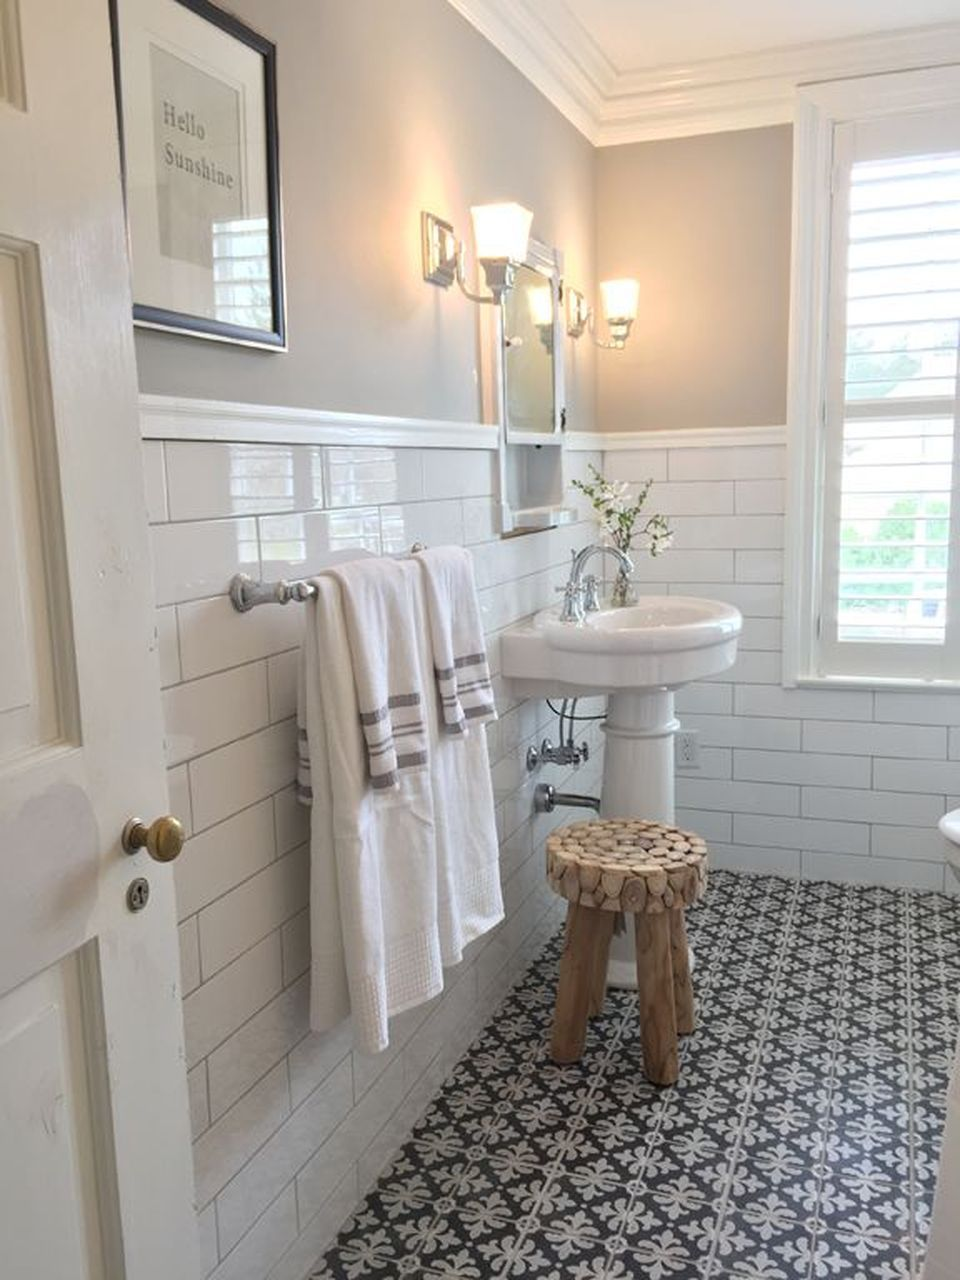 60 Inspiring Classic And Vintage Bathroom Tile Design With Images